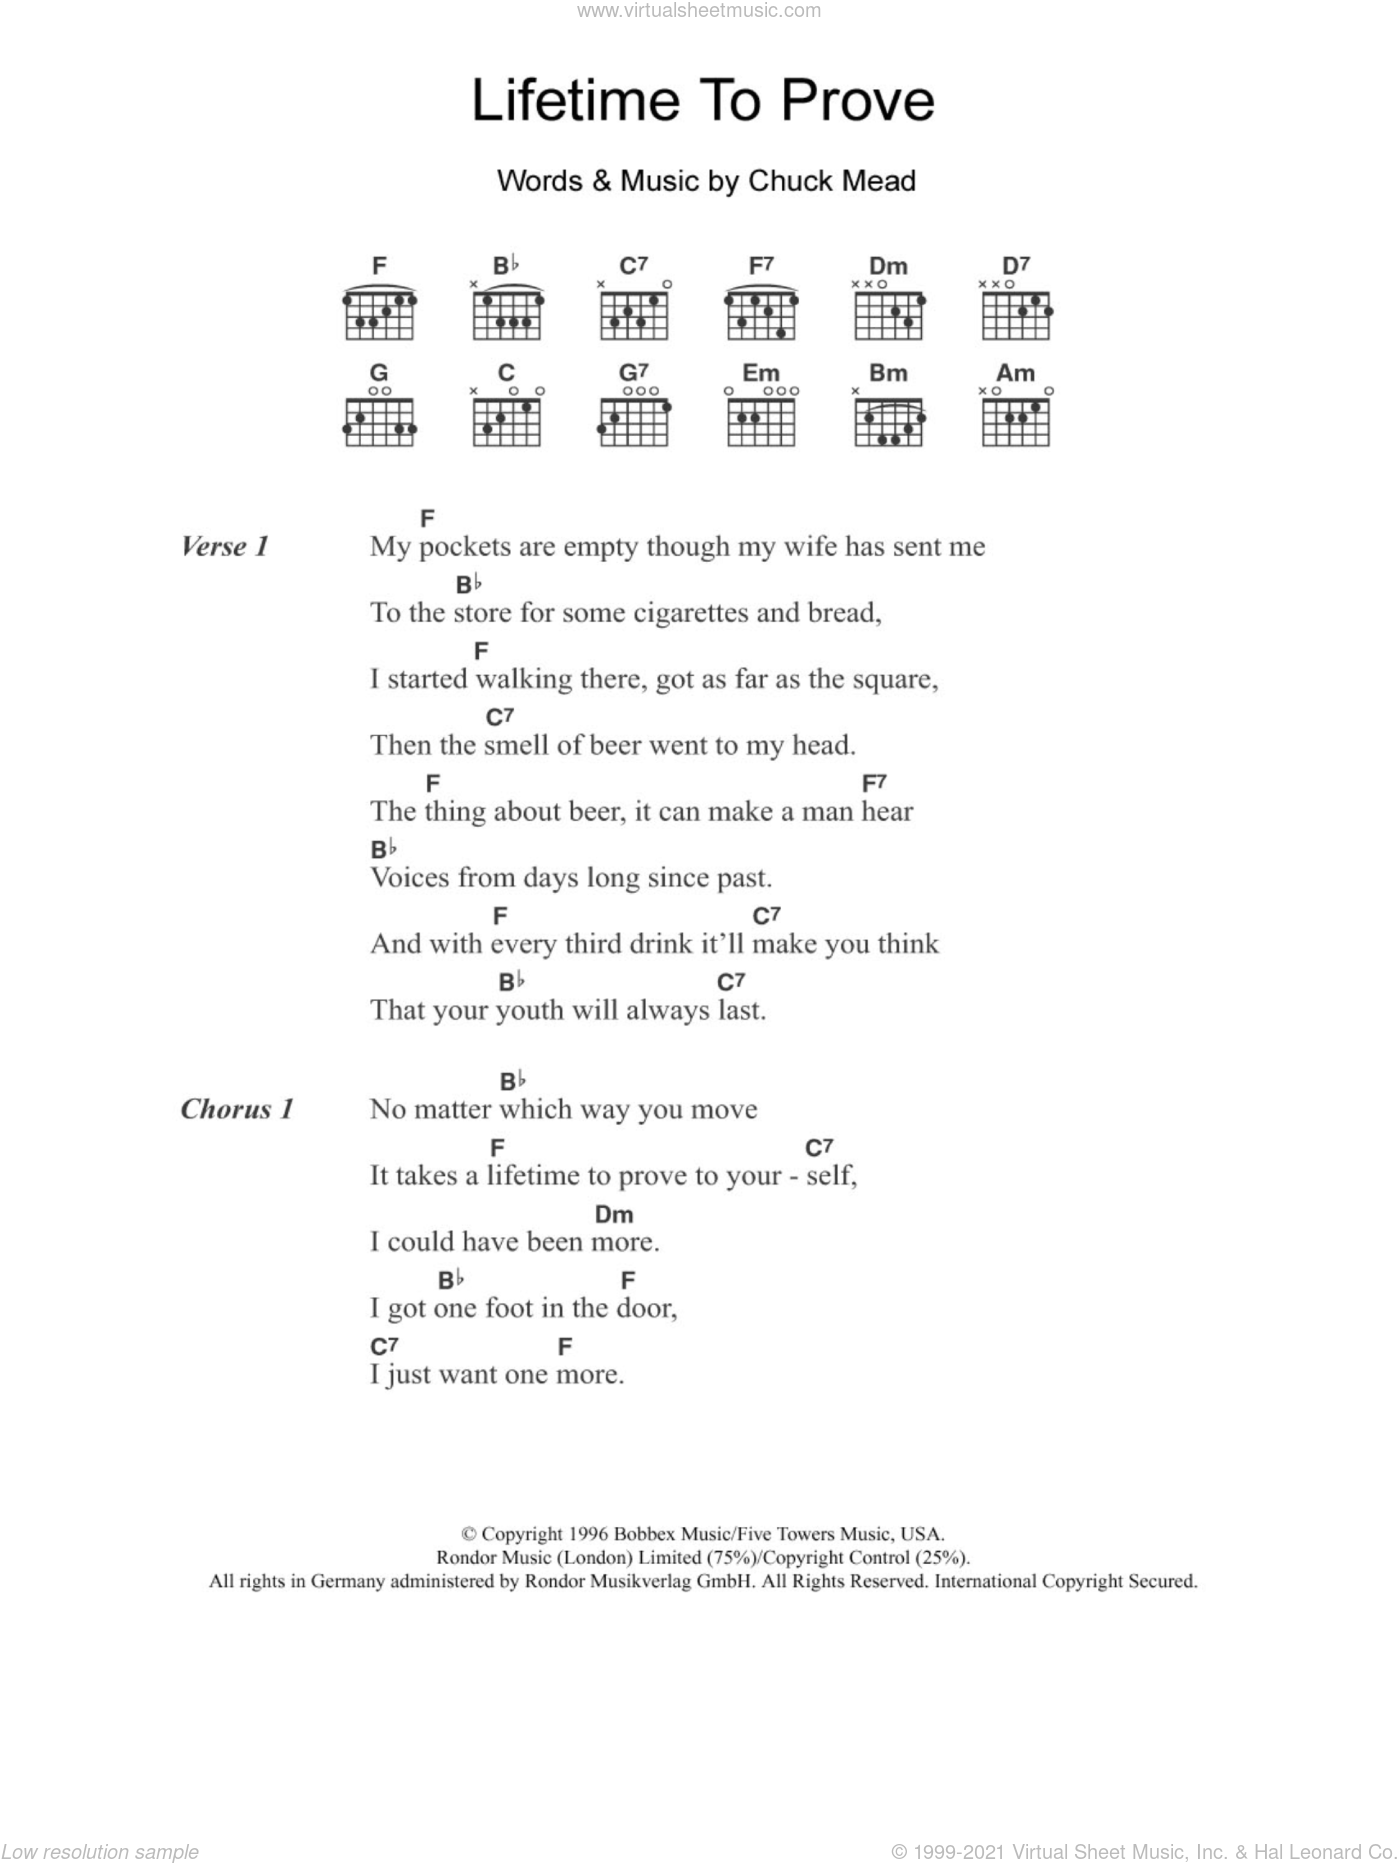 Lifetime To Prove sheet music for guitar (chords, lyrics, melody) by Chuck Mead